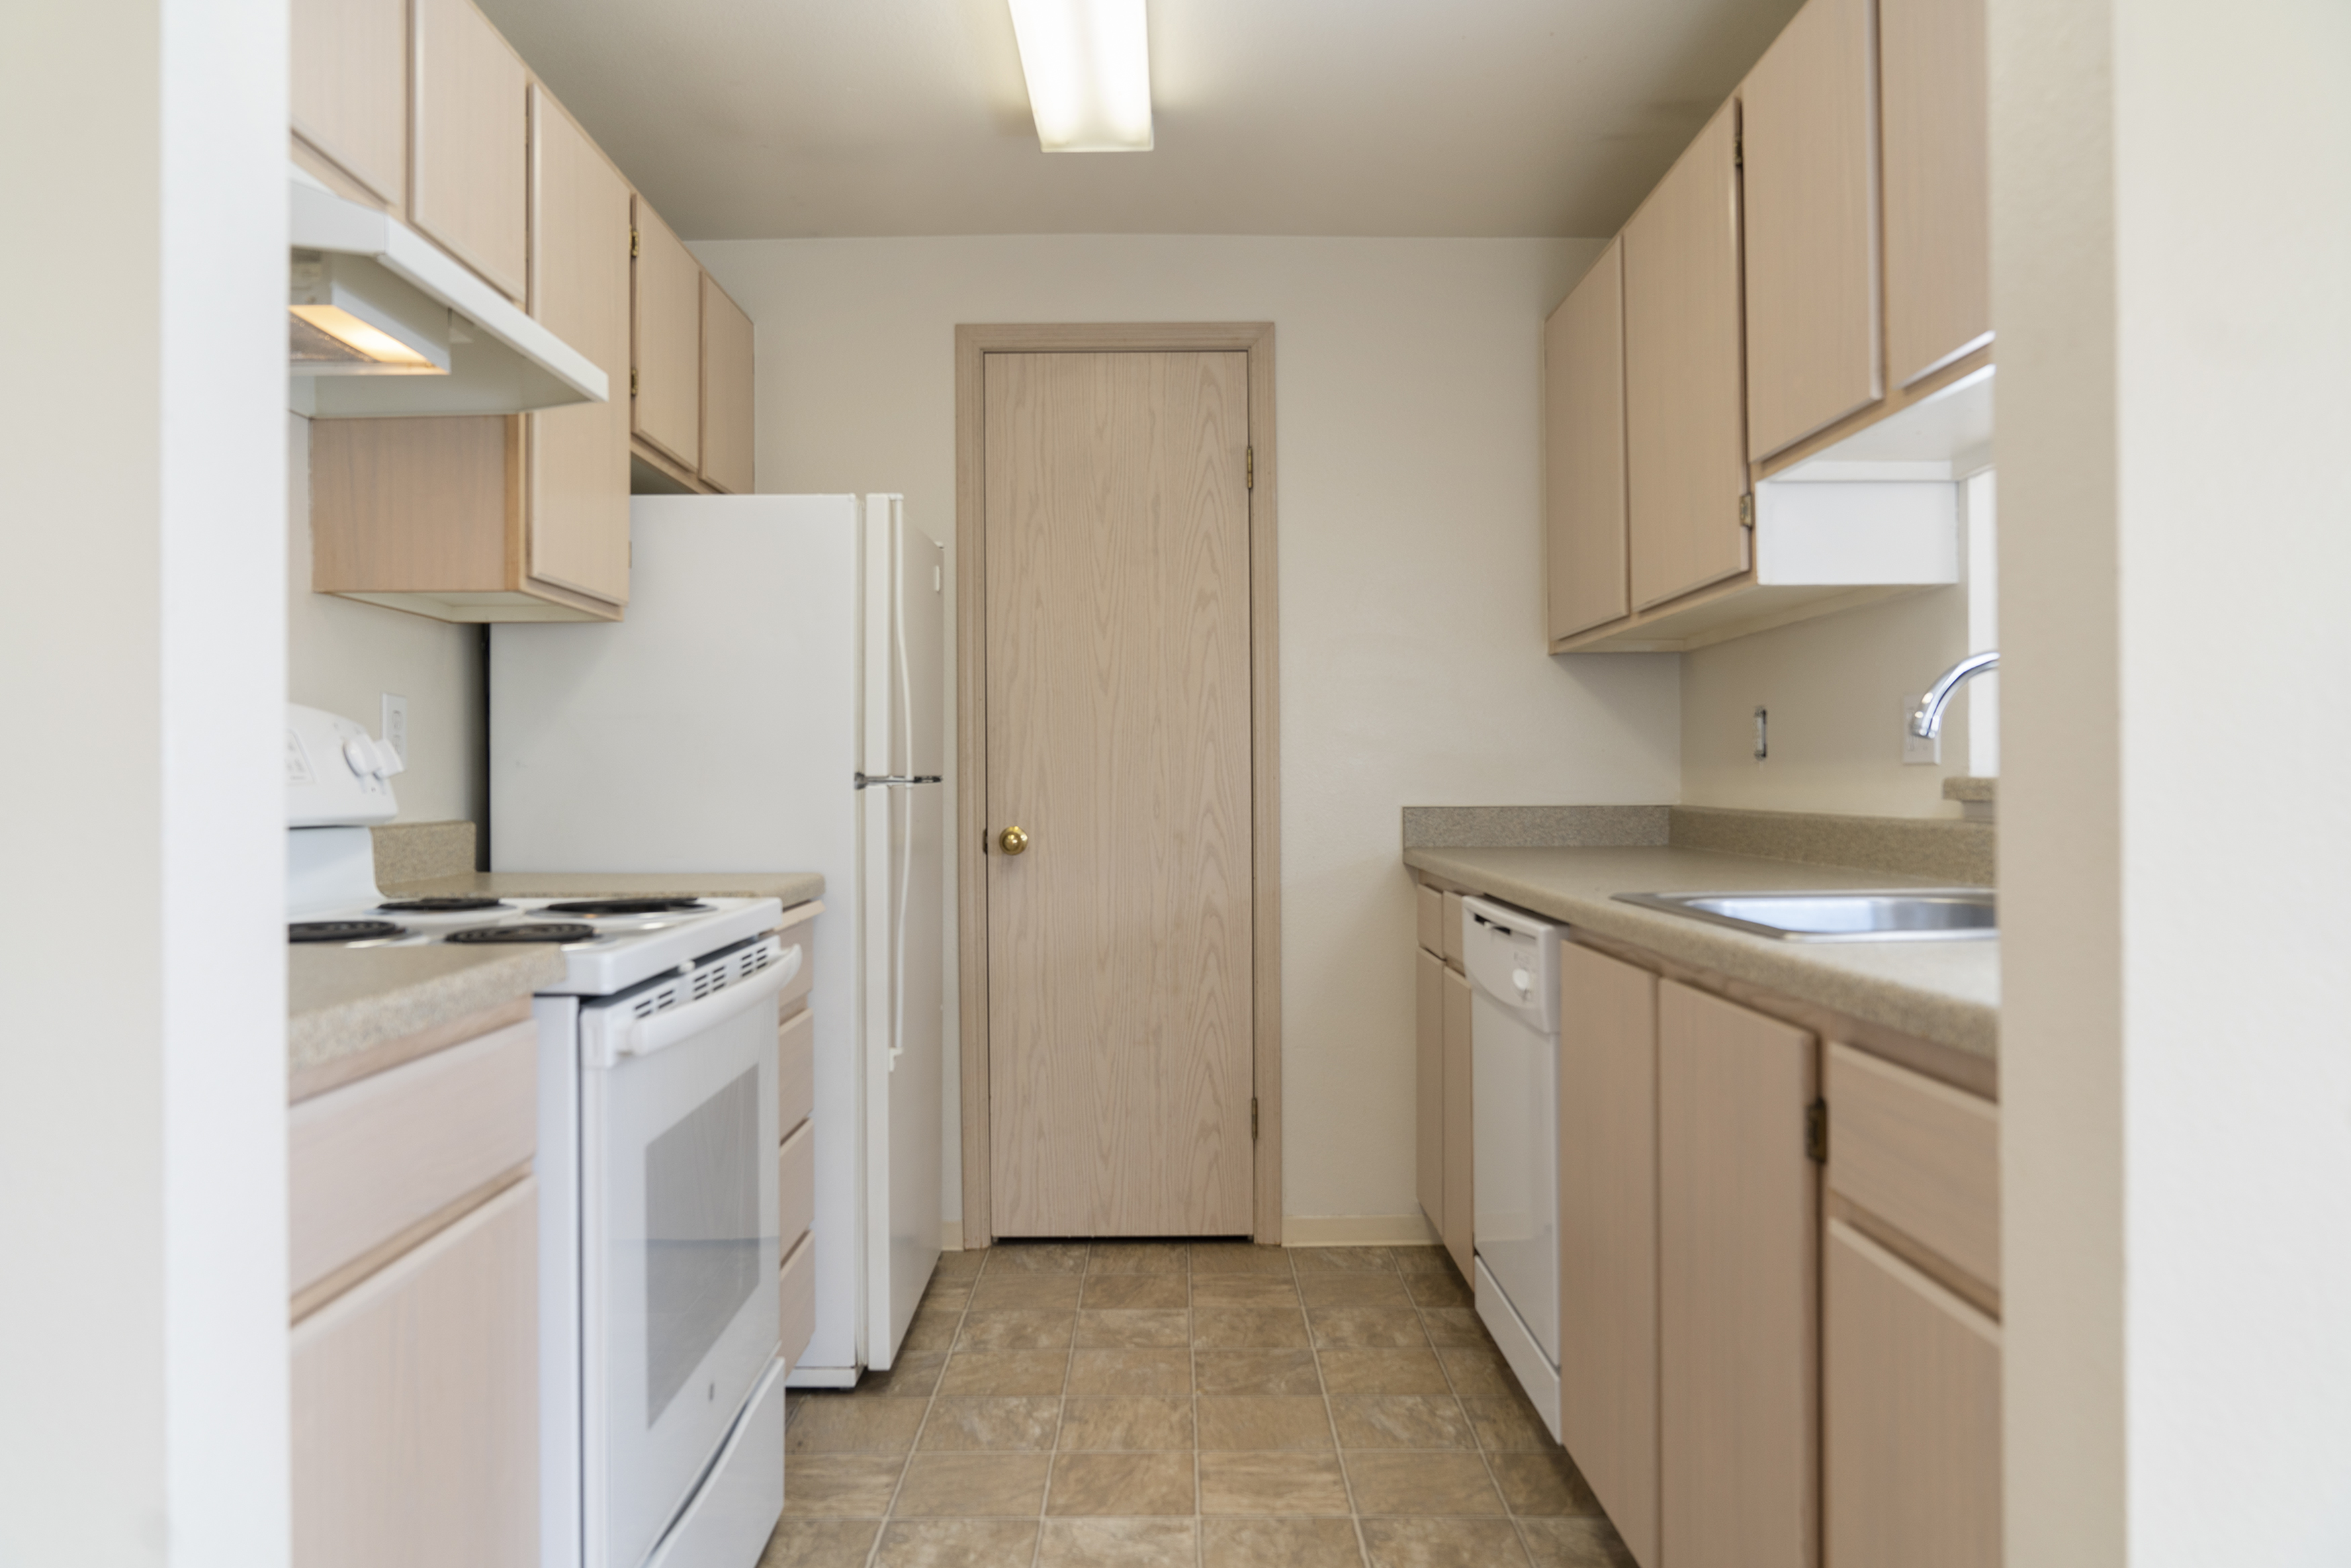 Image of Range/Stove for Fircrest Gardens Apartments